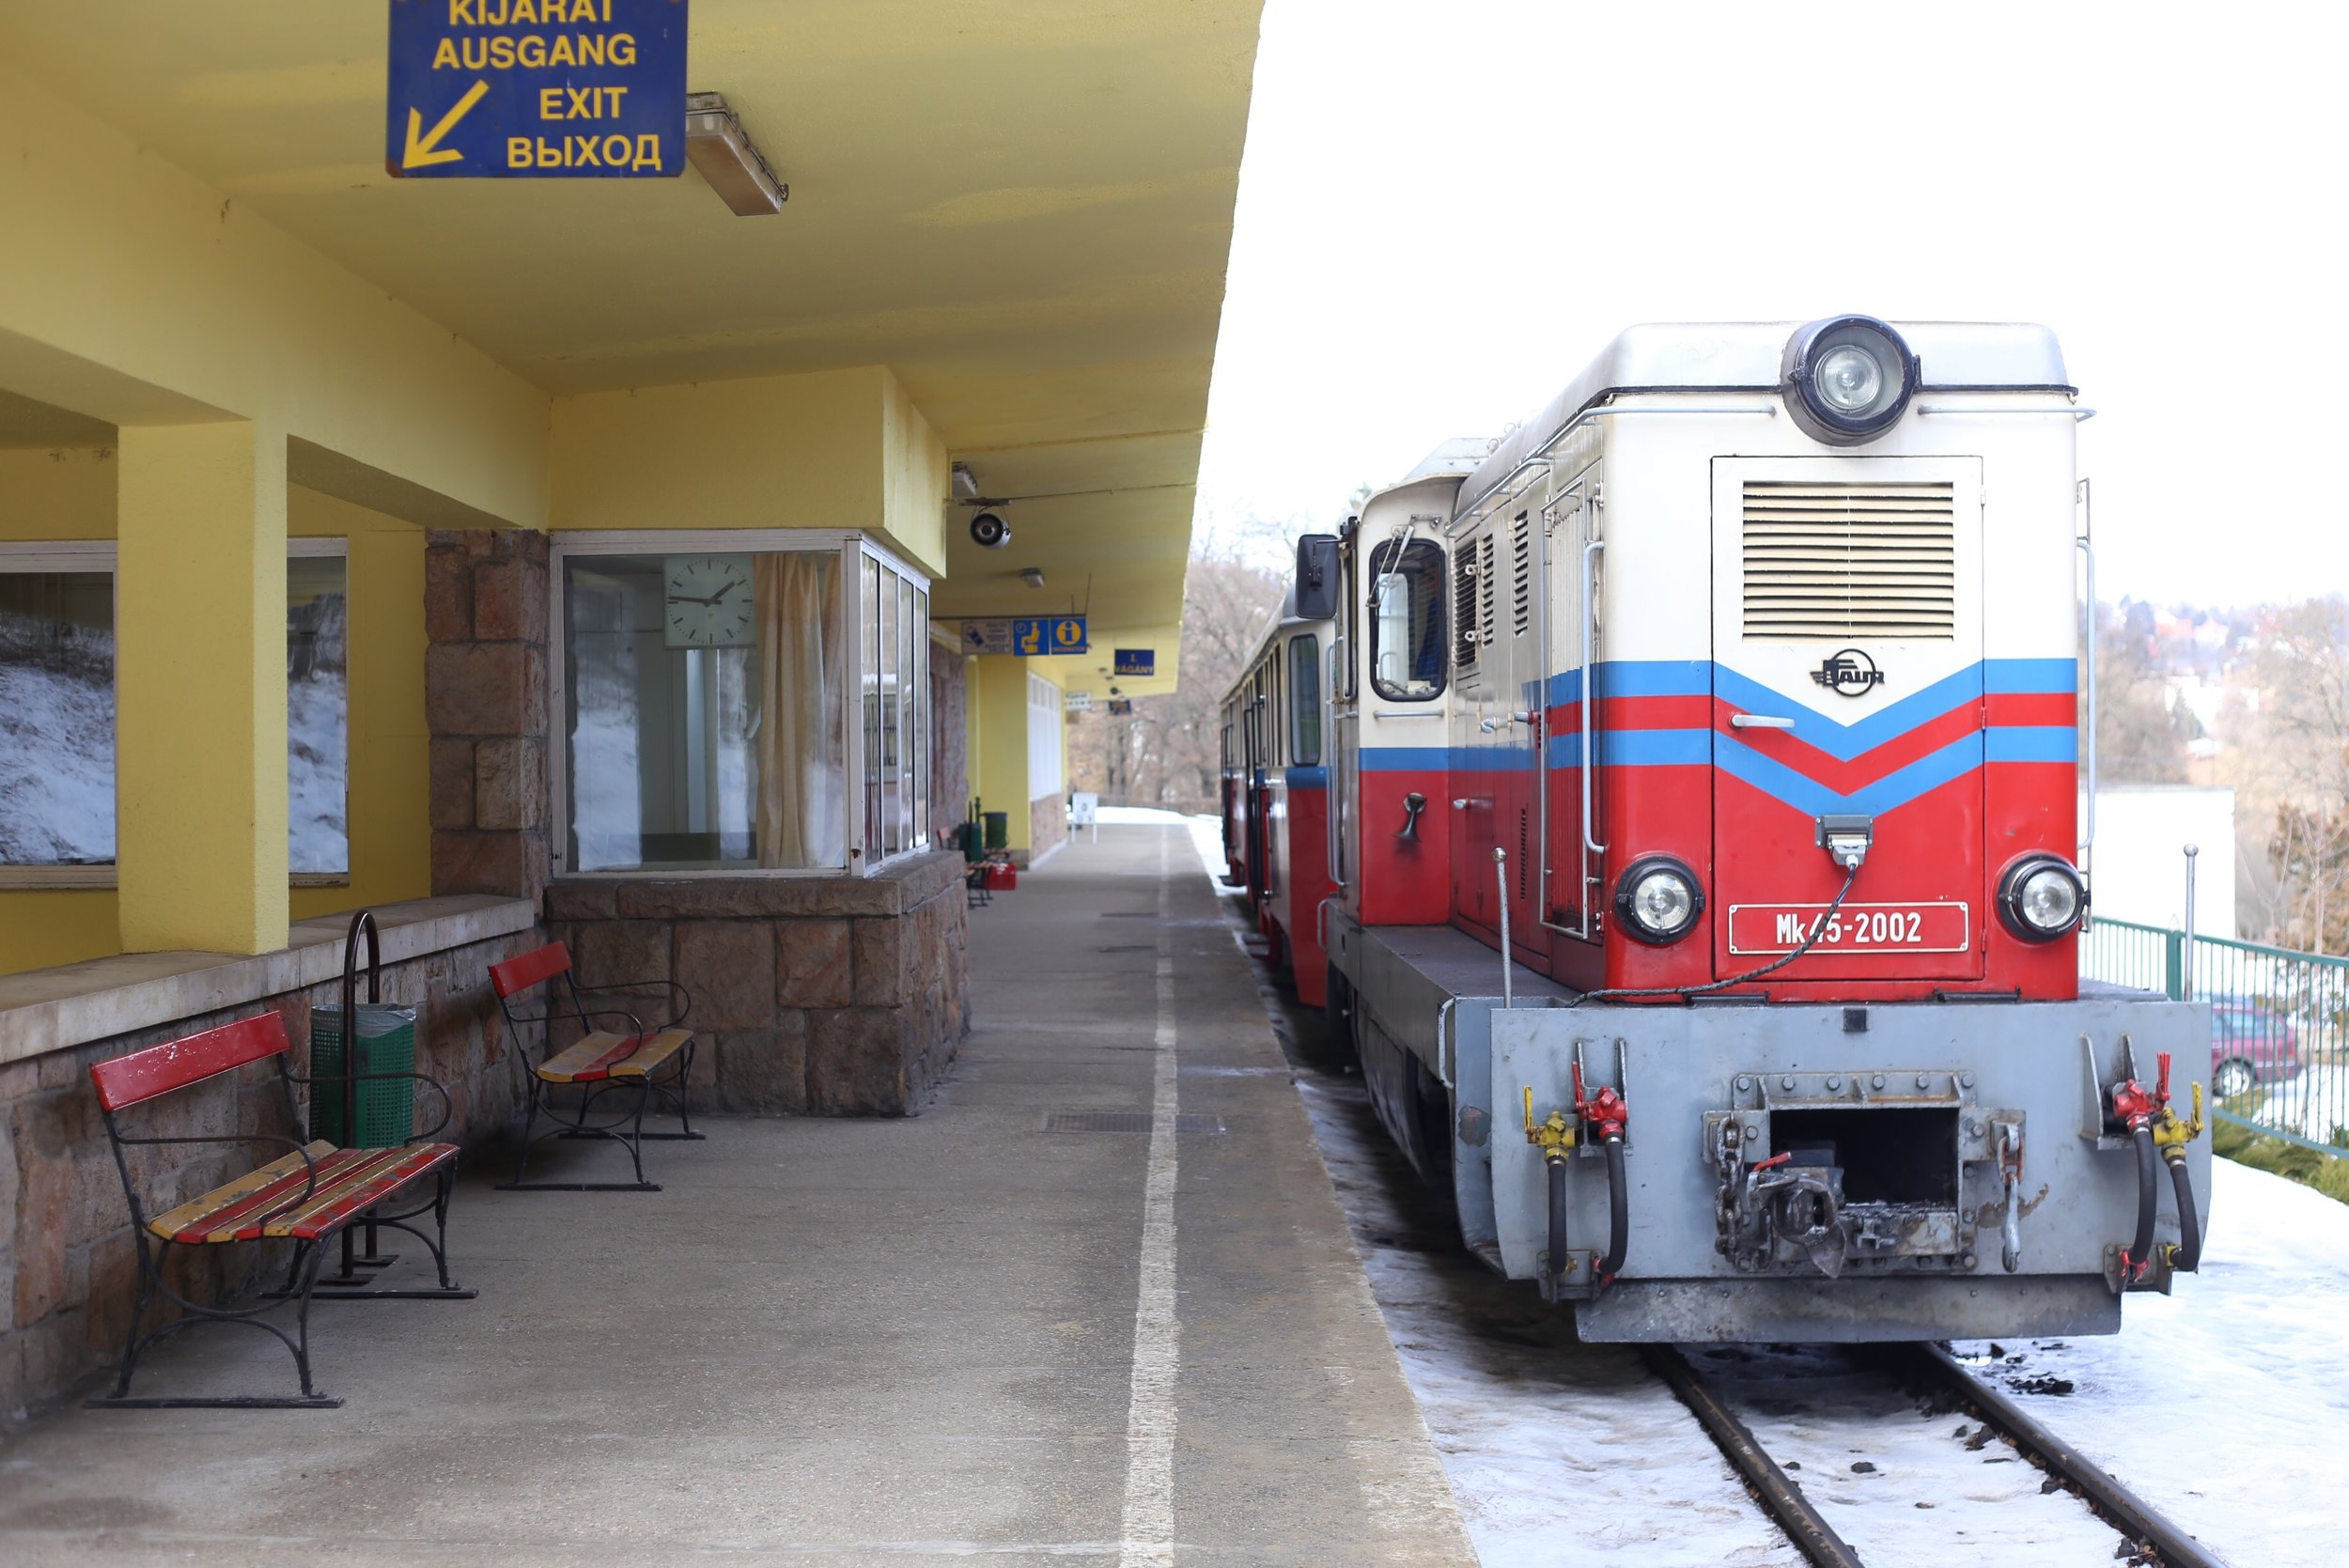 An old train sits in the station of the Children's Railway, Budapest.